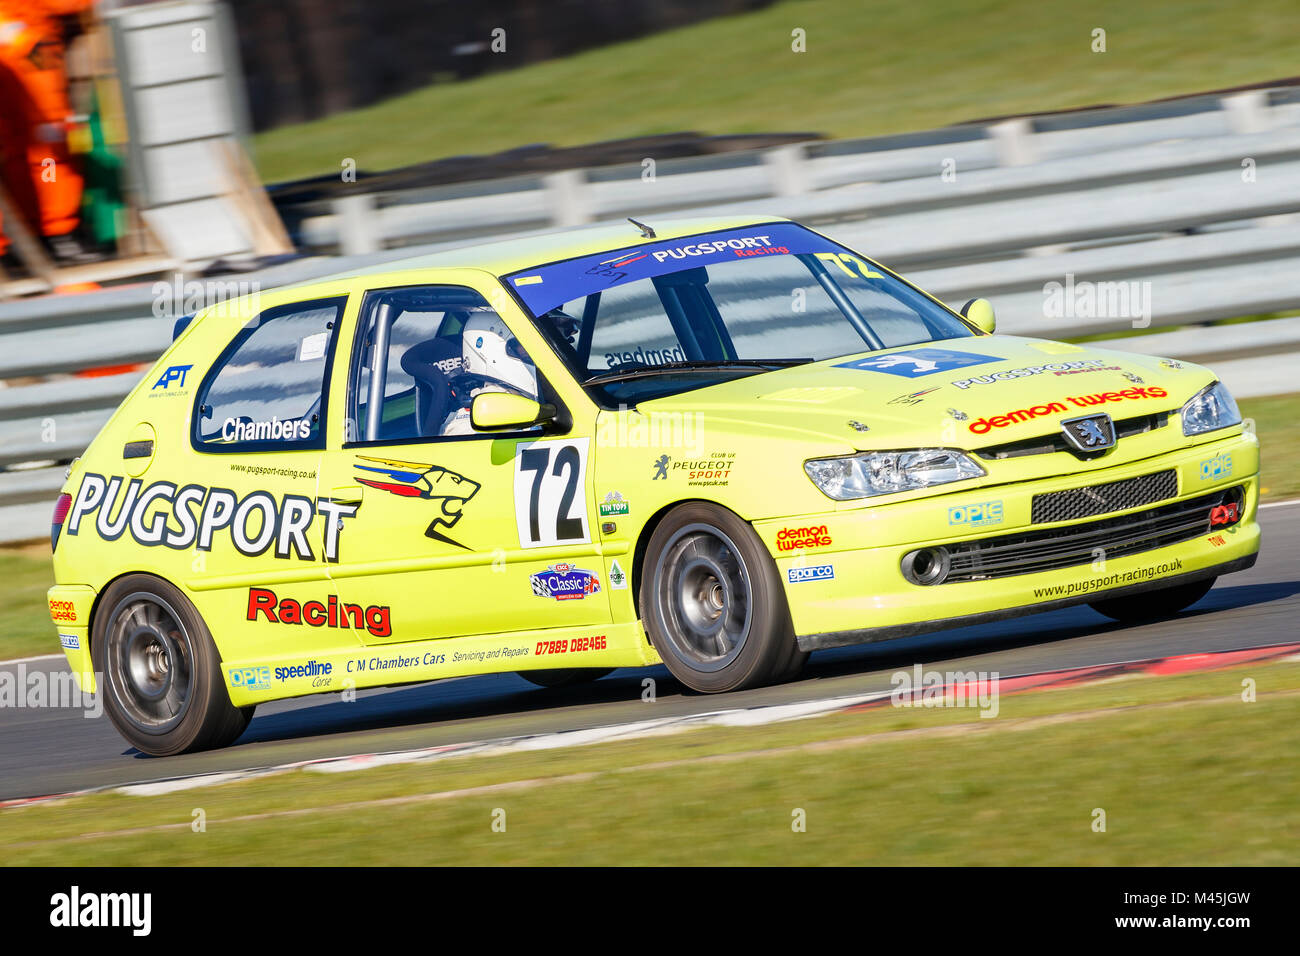 1999 Peugeot 306 Rallye Class A with driver Carl Chambers at the CSCC meeting Snetterton Motor Circuit, Norfolk, - Stock Image